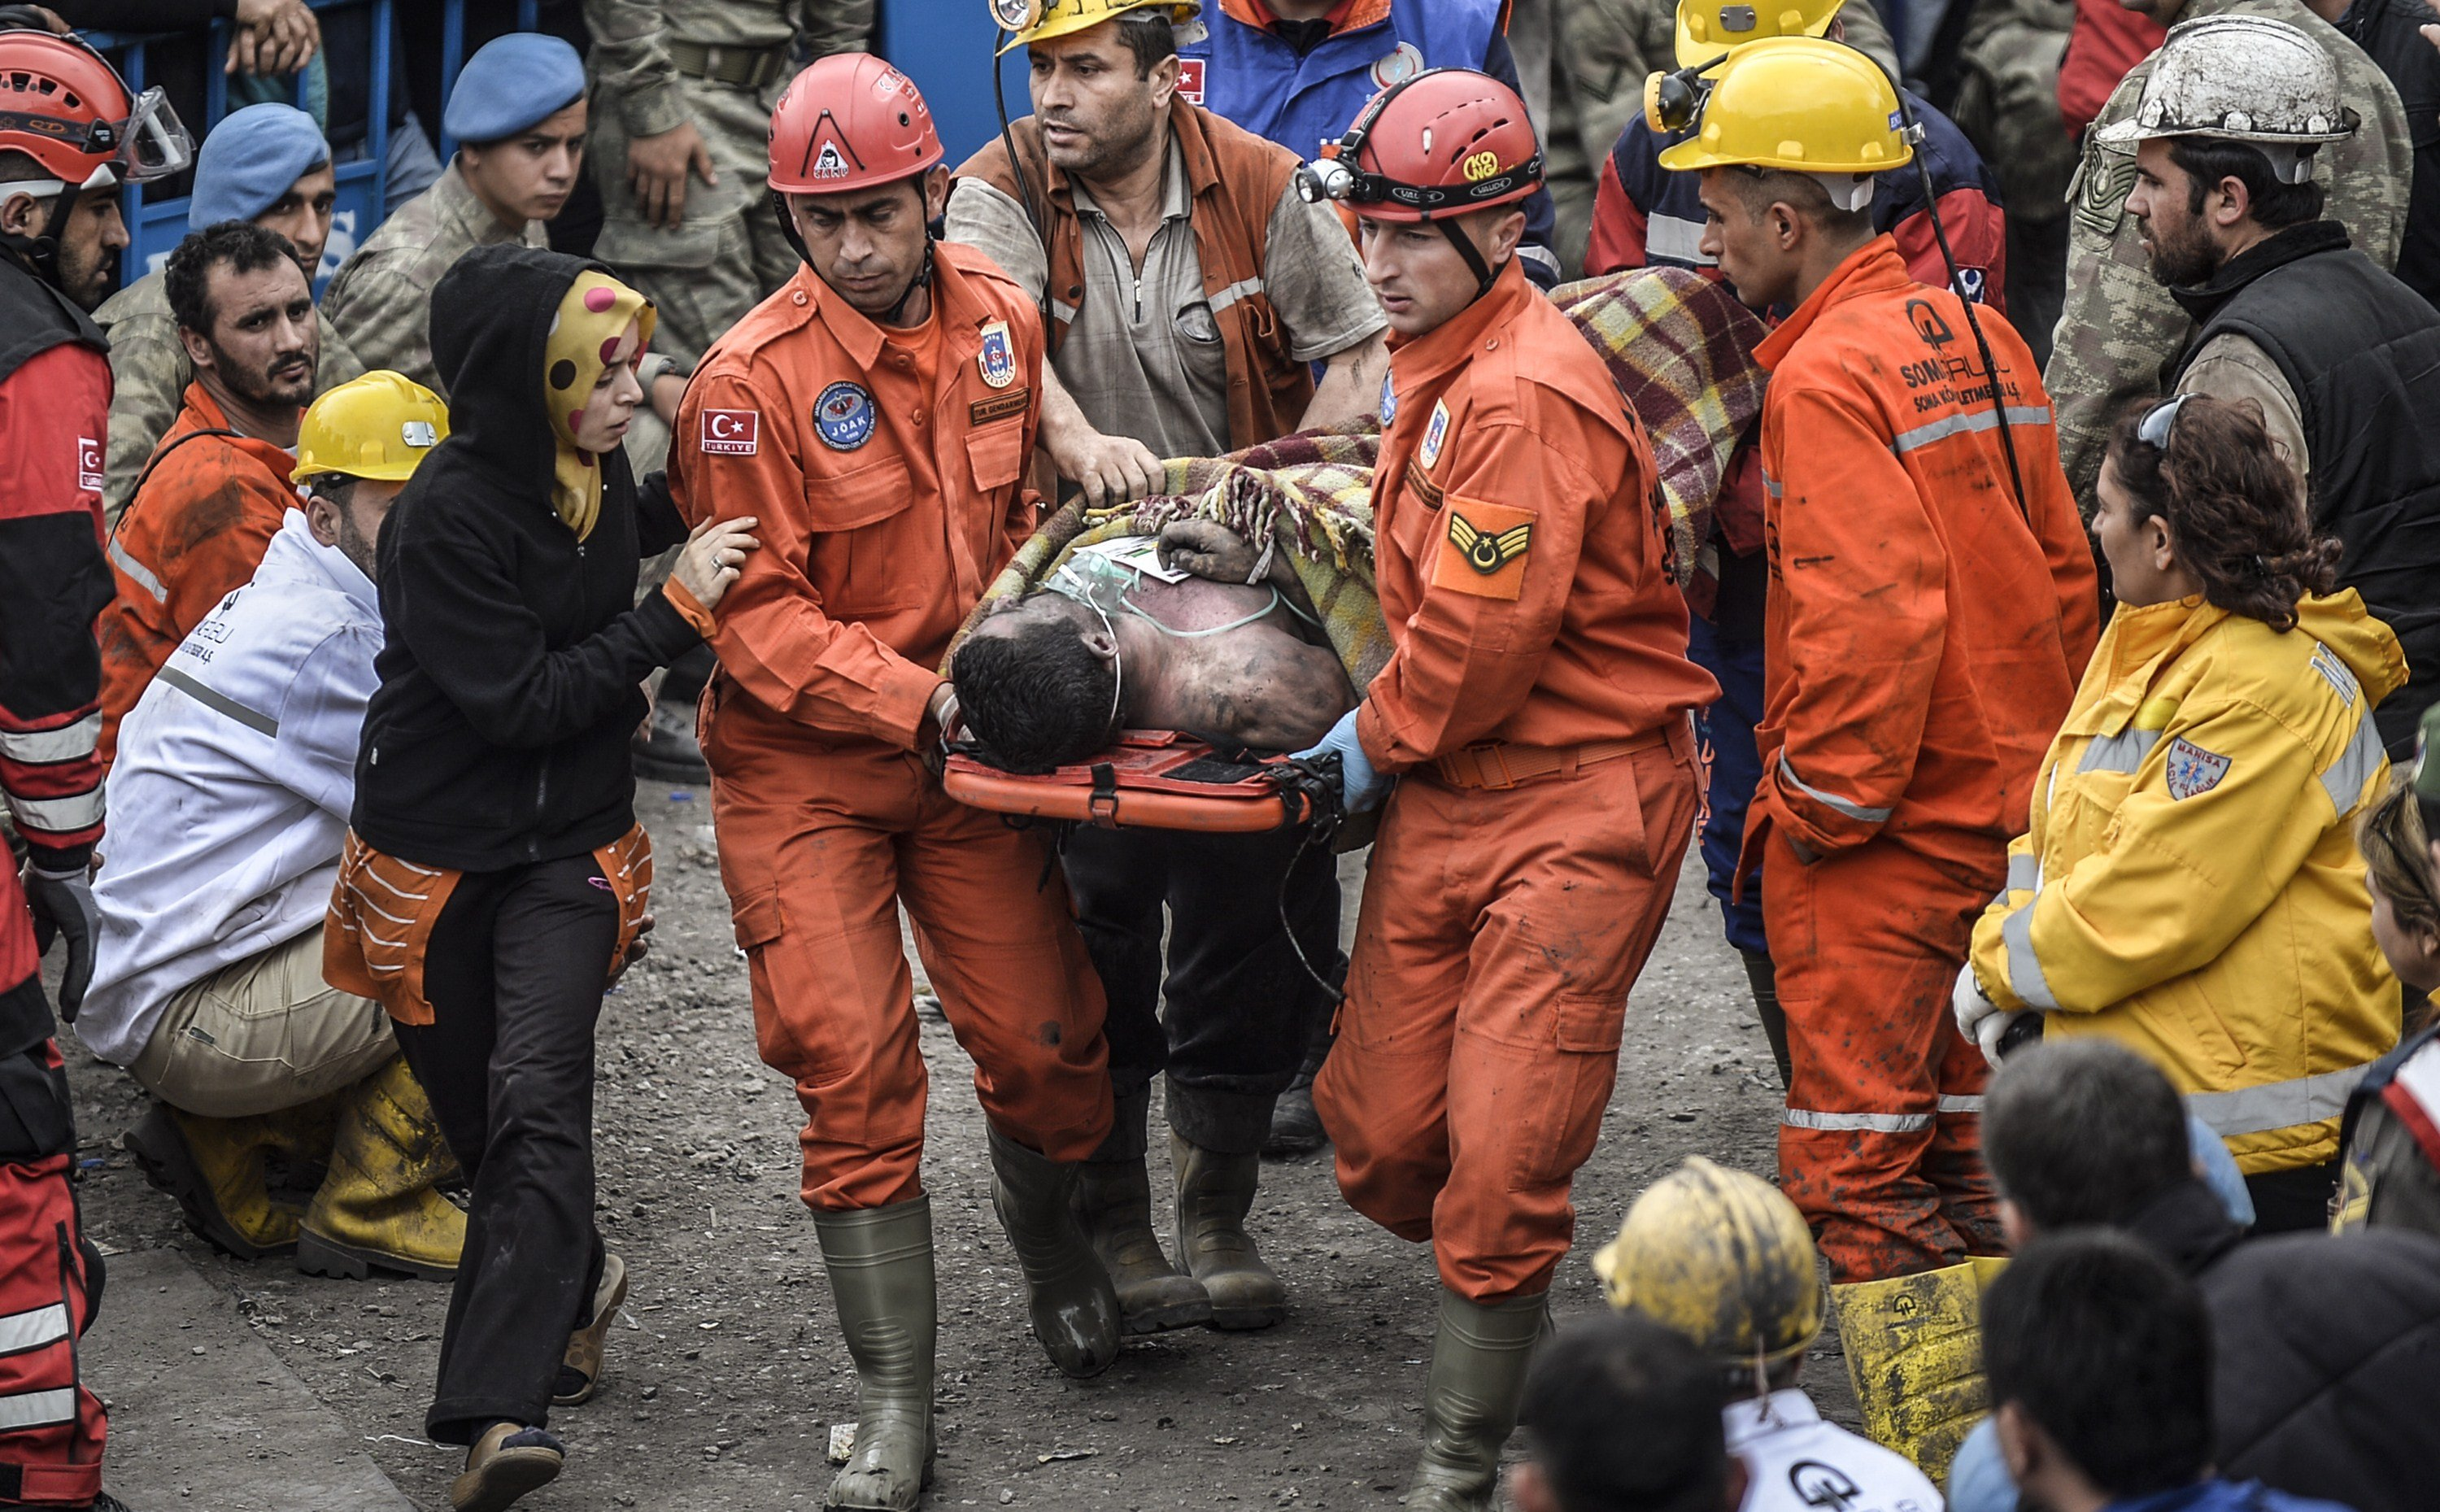 A woman reacts as she searches for relatives while rescuers carry out dead miners on May 14, 2014.